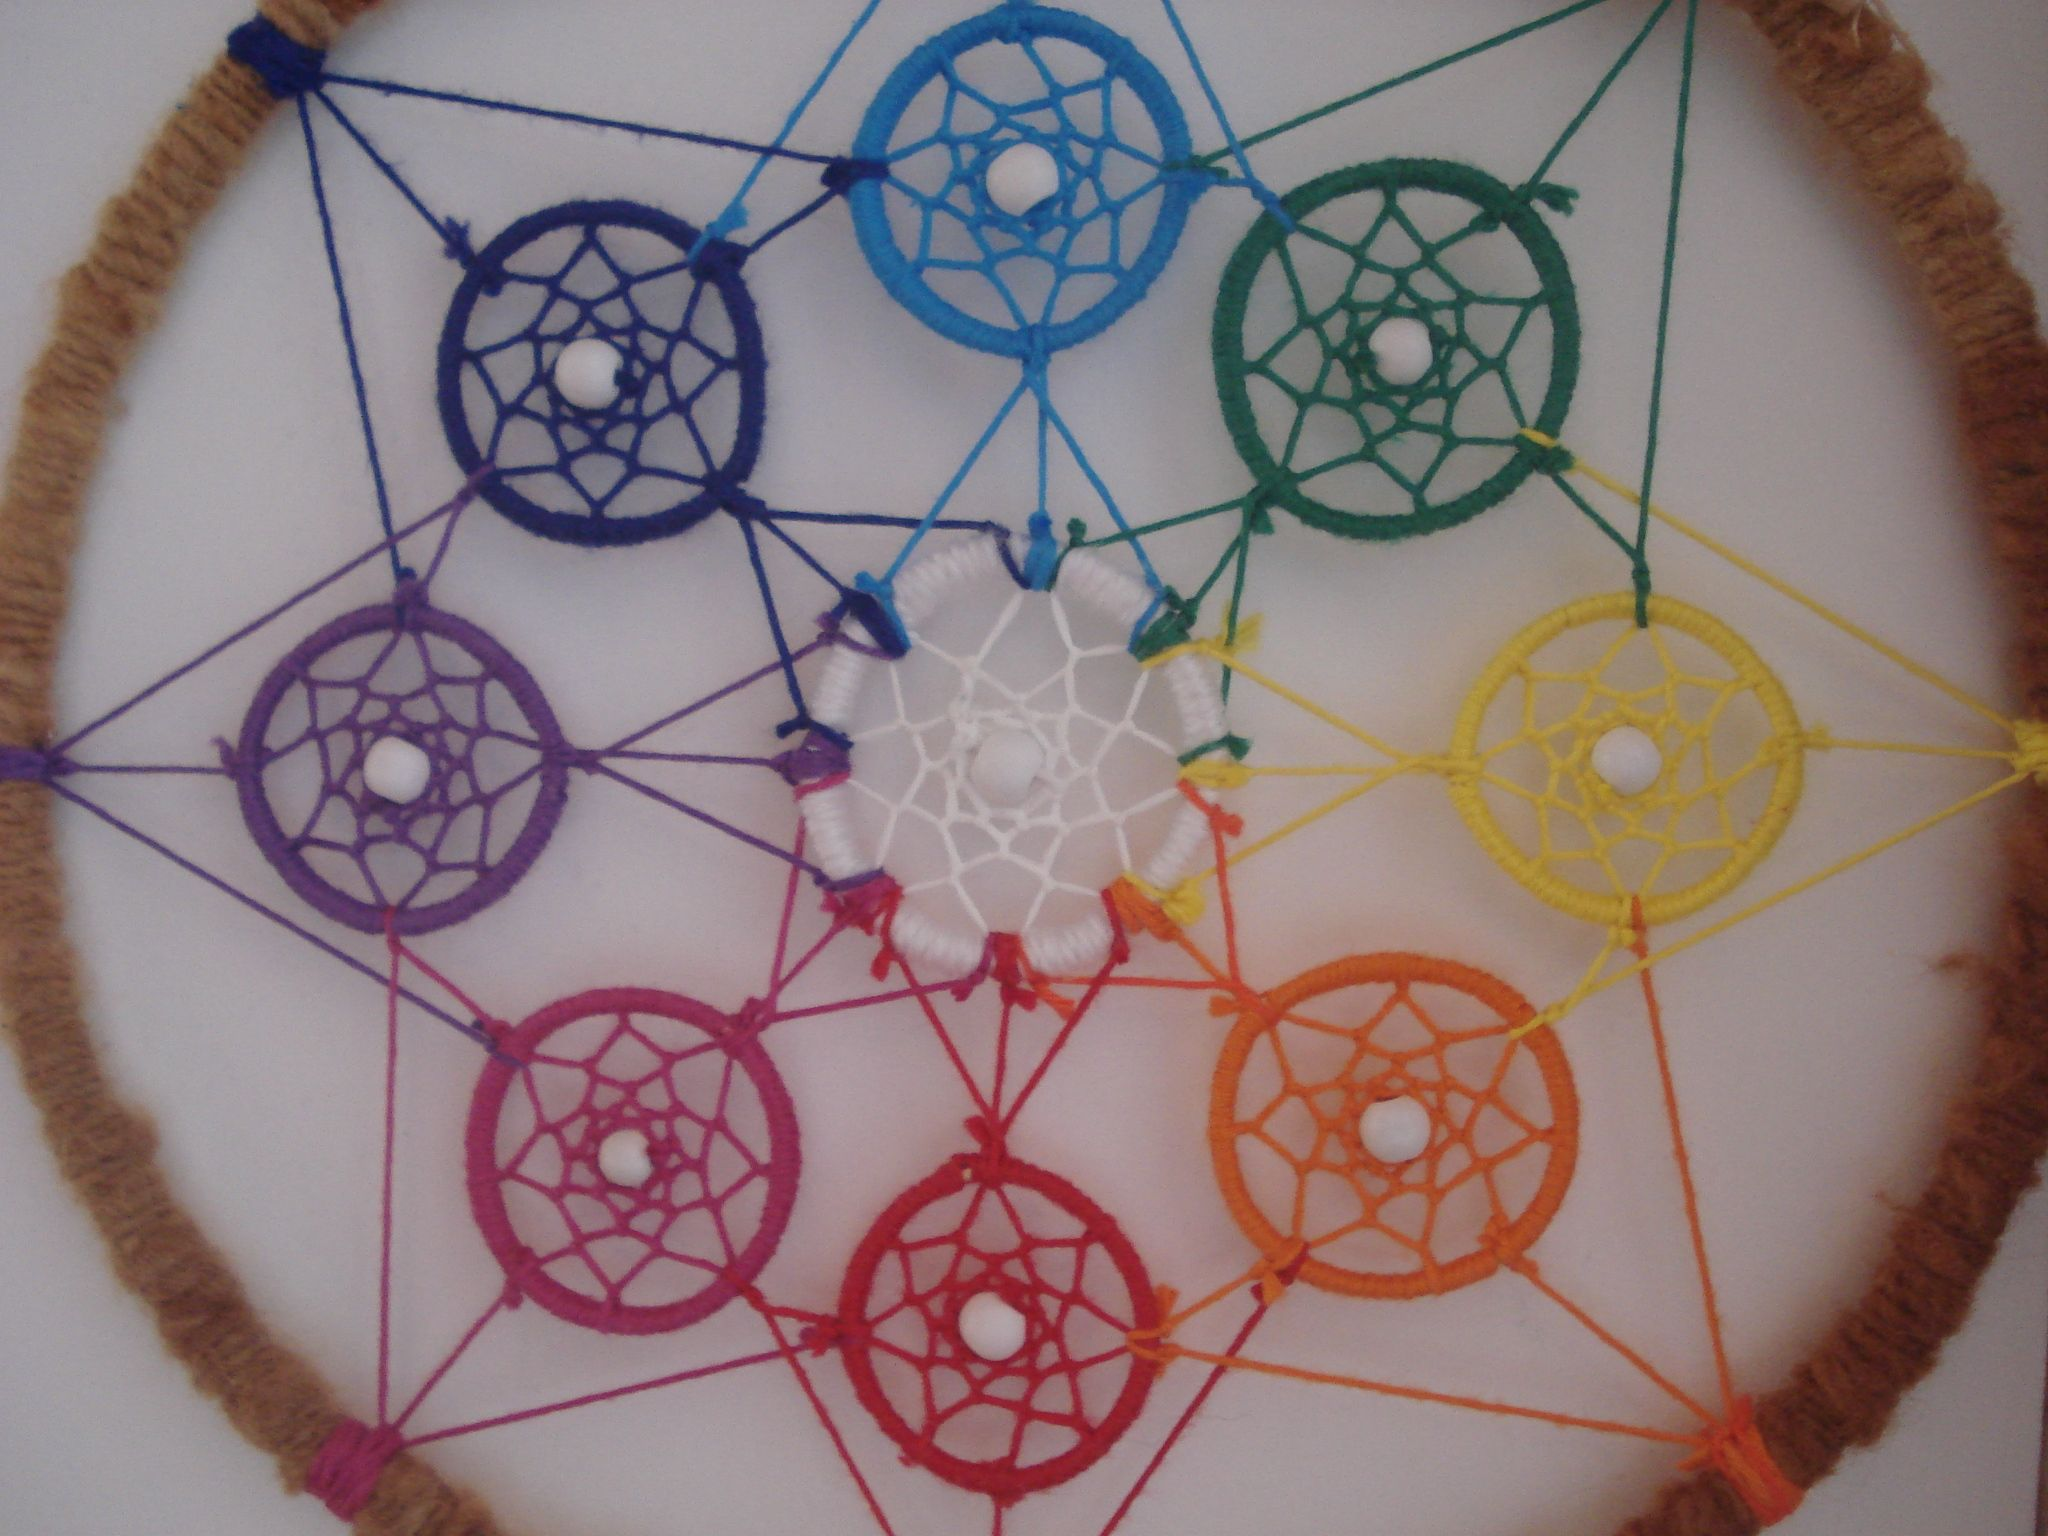 This Paperclip Dreamcatcher Is About Two And A Half Feet